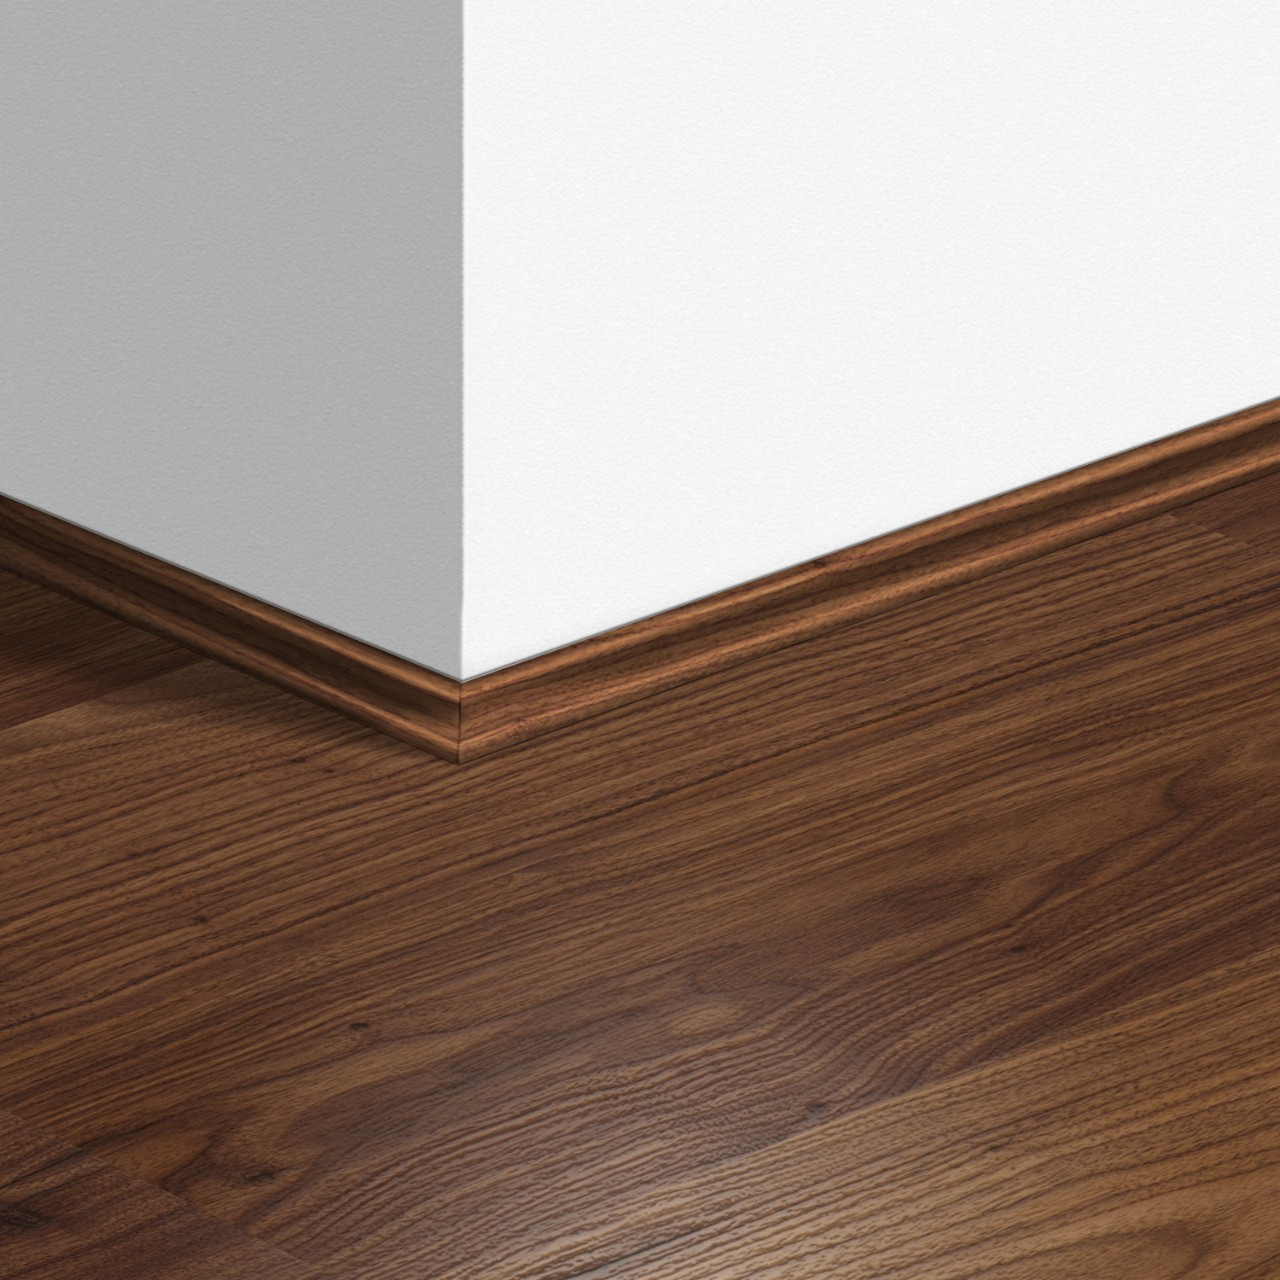 QSSCOT Laminate Accessories Oiled walnut QSSCOT01043